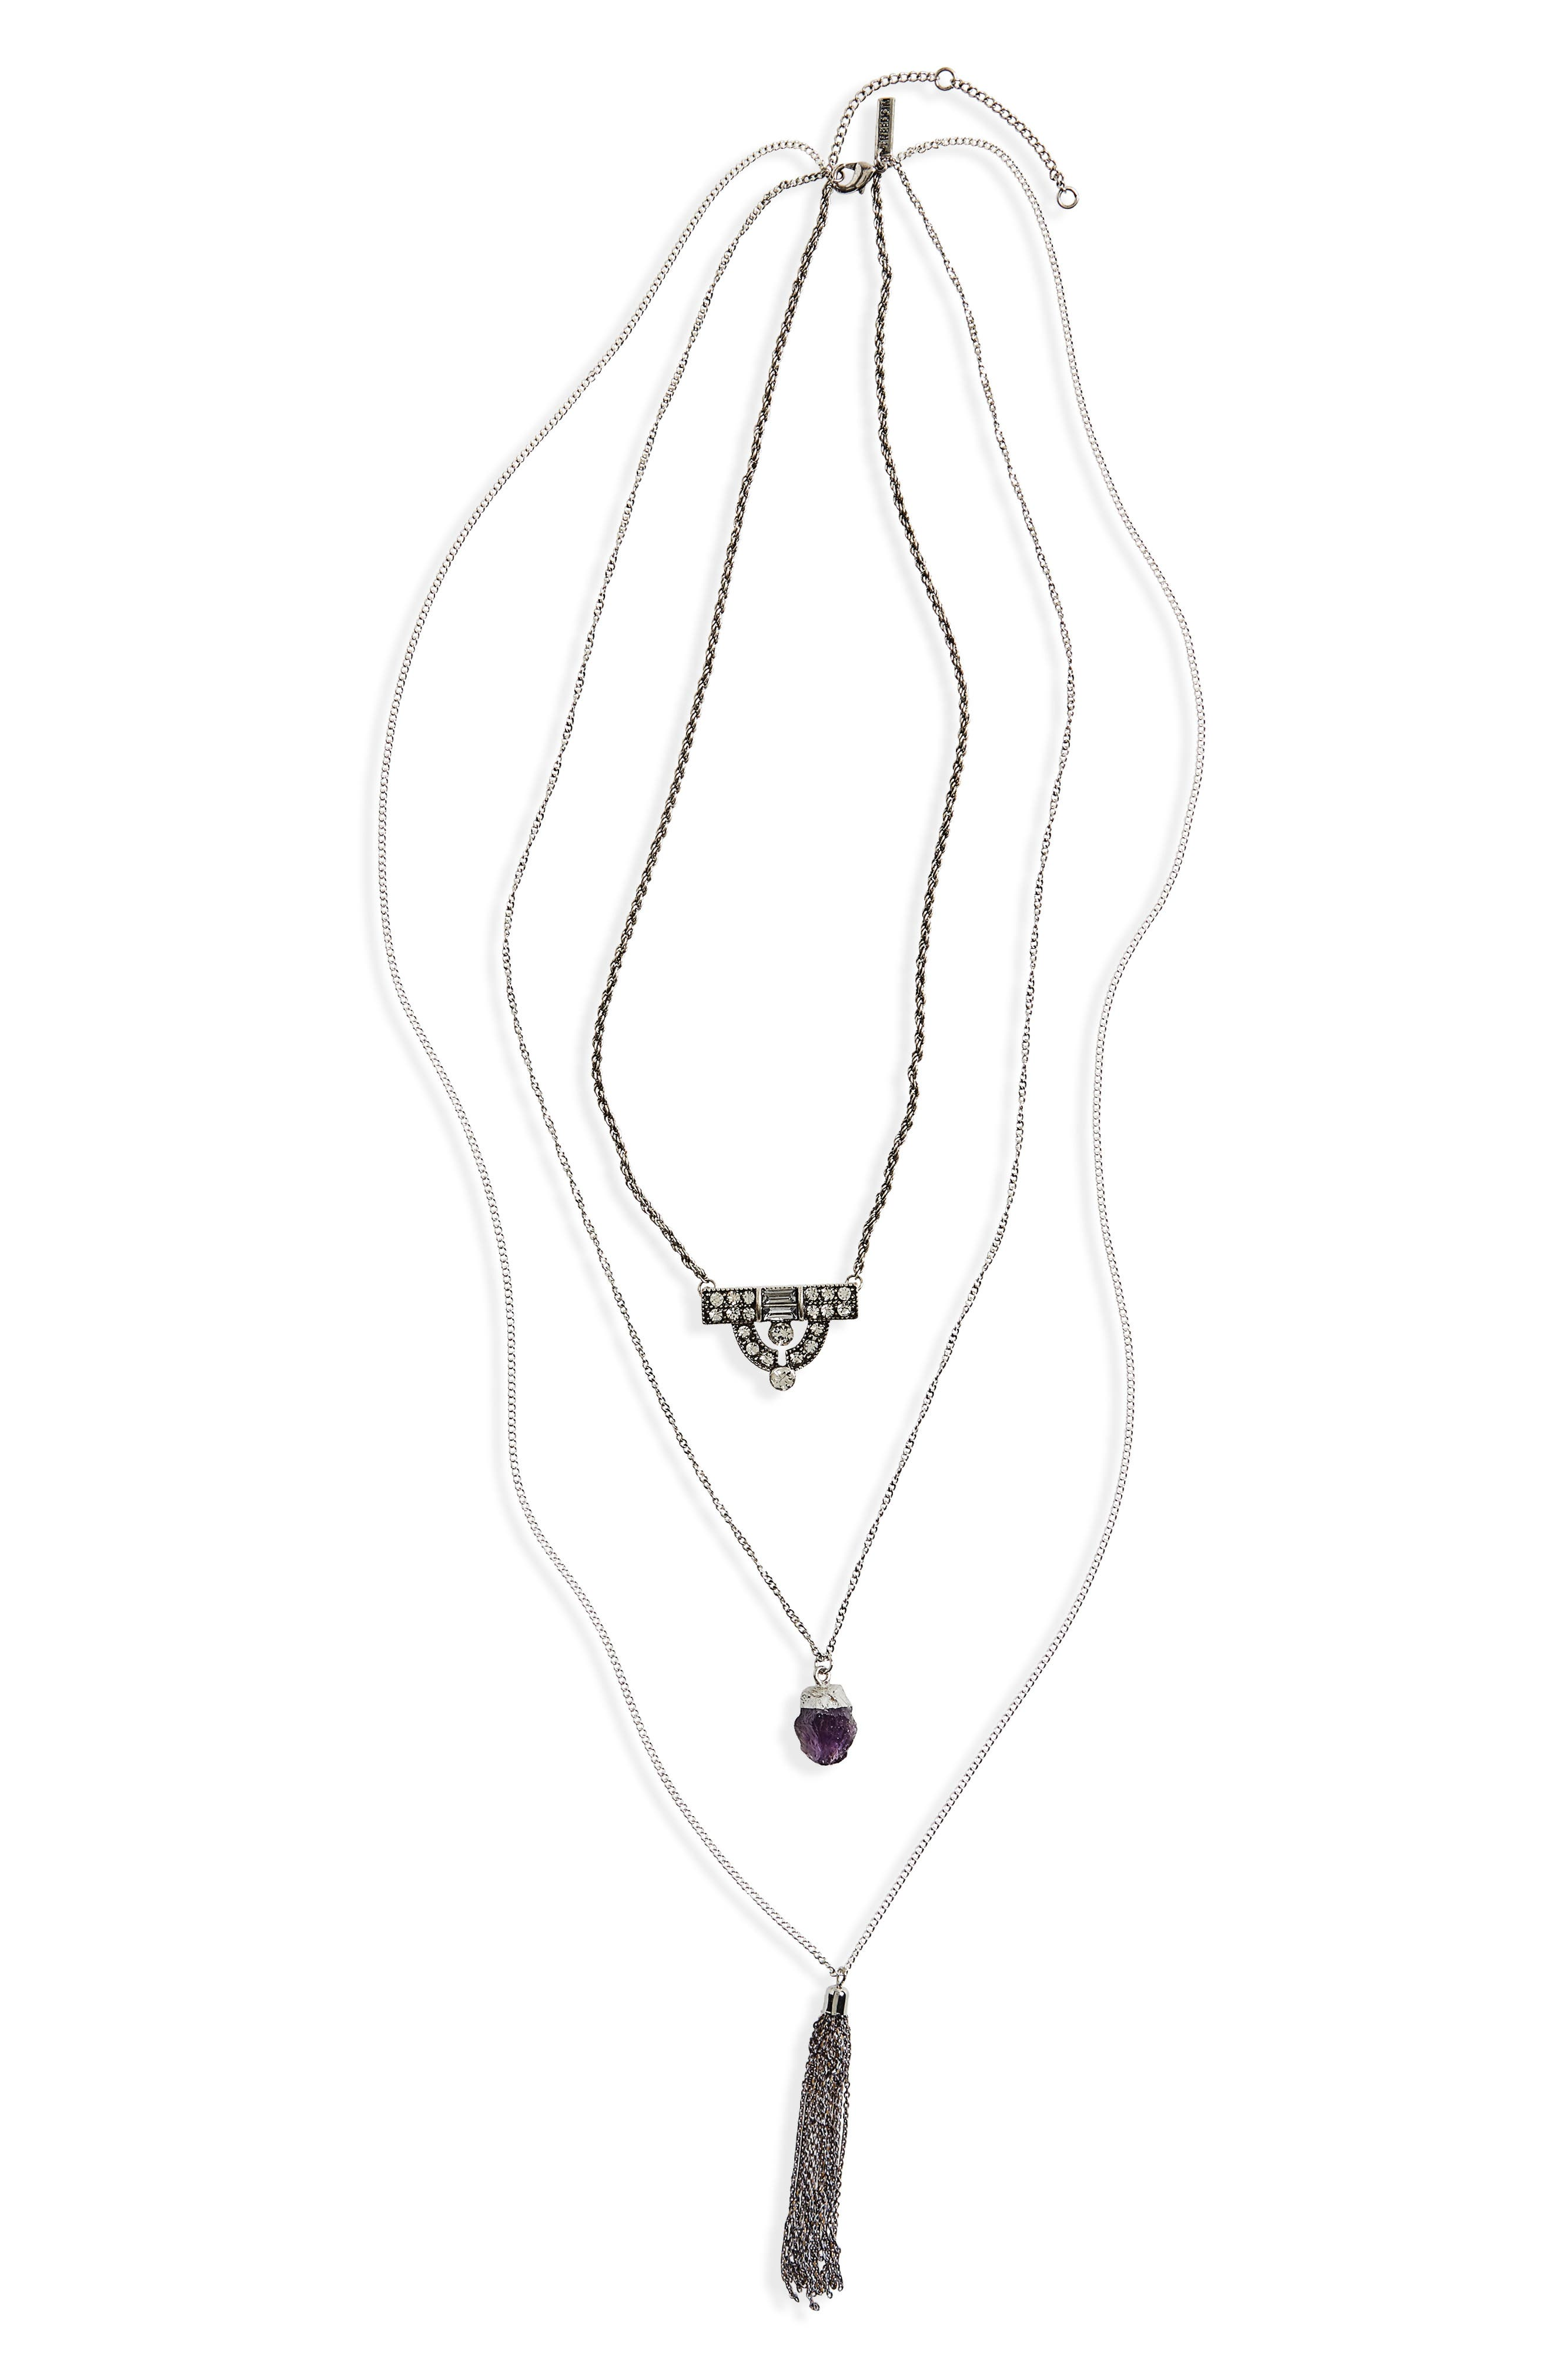 Multistrand Pendant Necklace,                         Main,                         color, 500